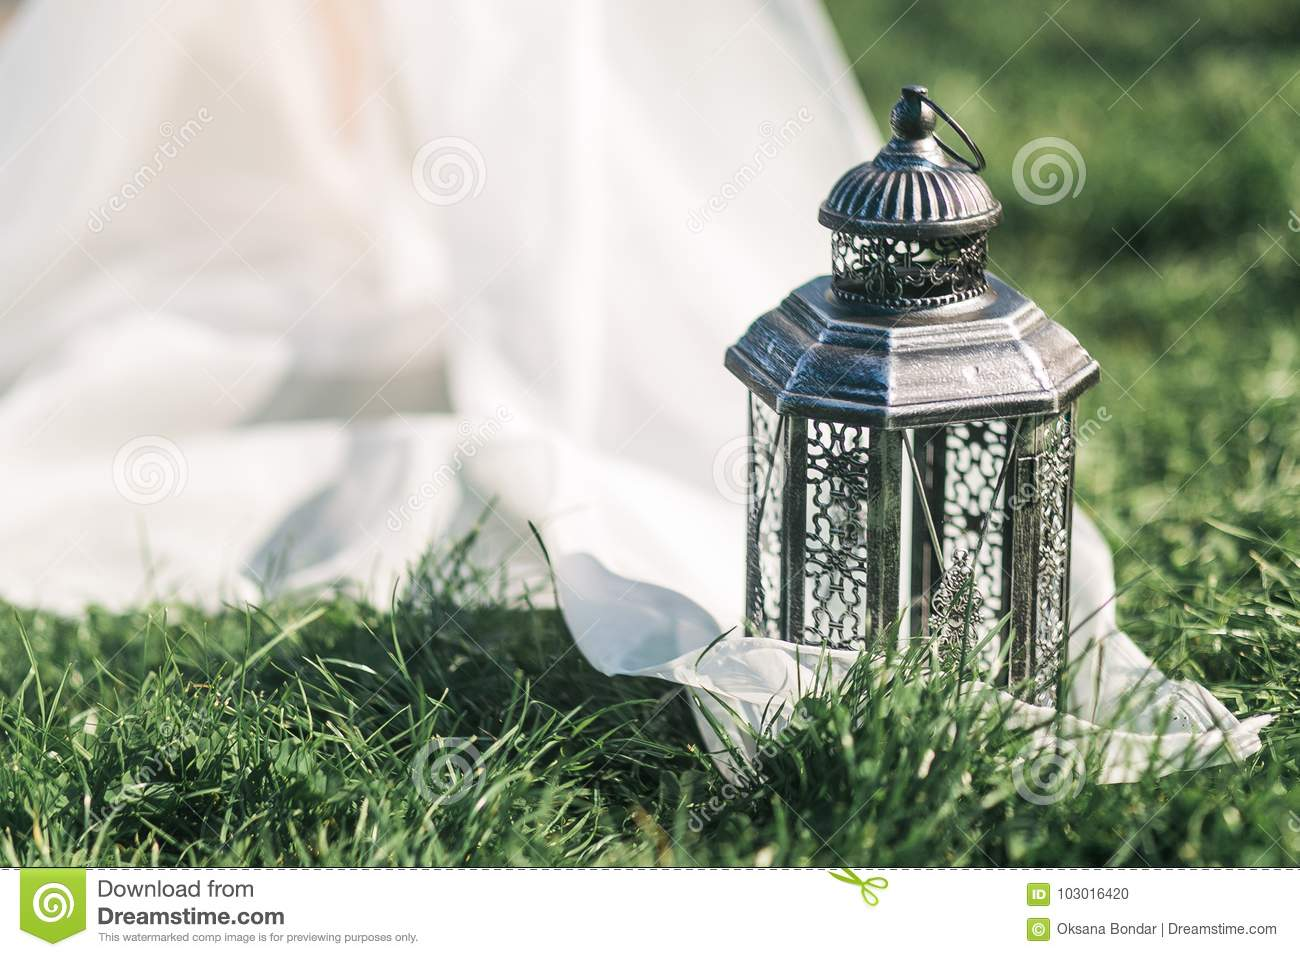 Wedding still life black lantern on grass and white tule in rustic style.